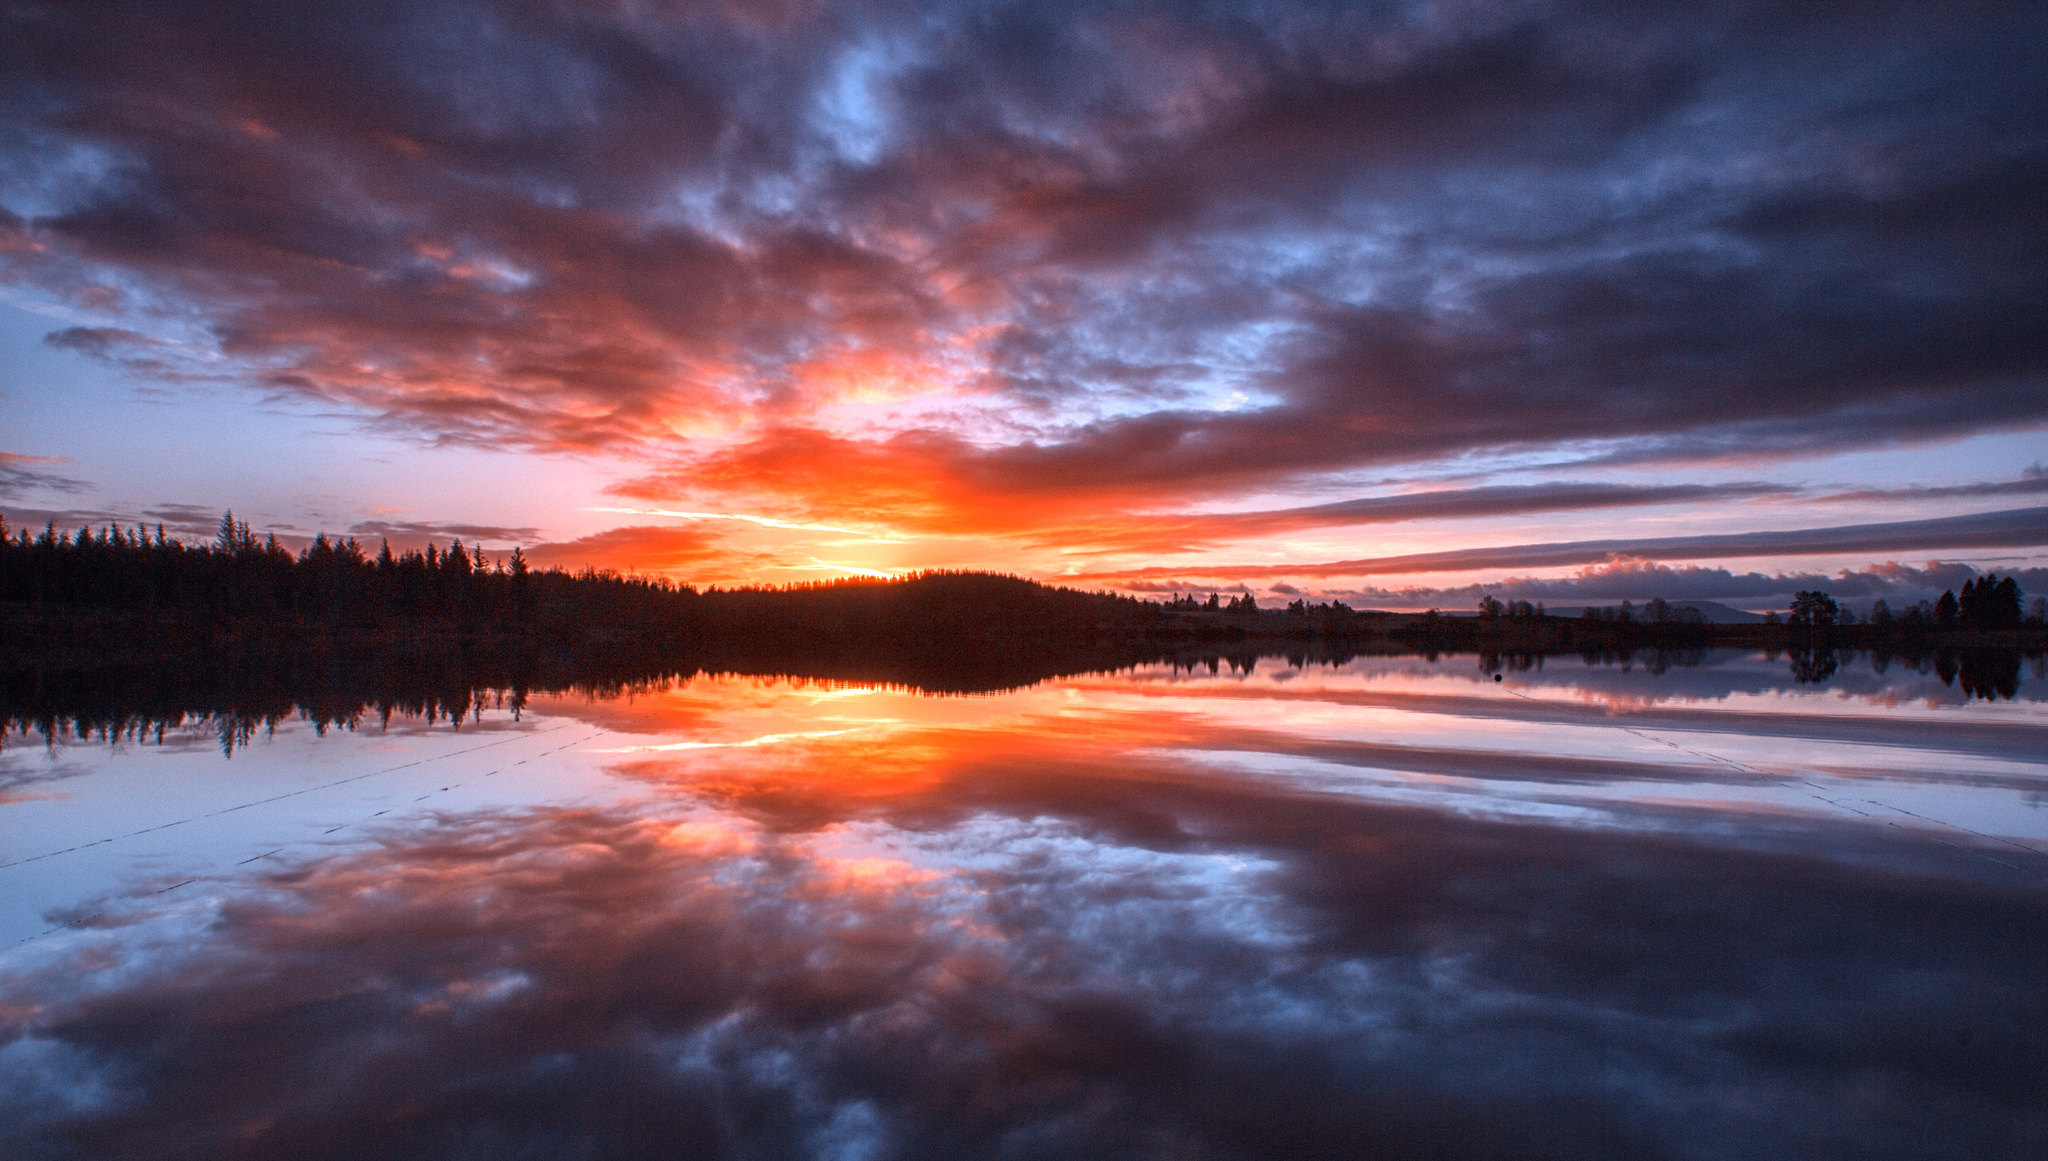 A dazzling dawn over Loch Rusky, Image by John McSporran Creative Commons